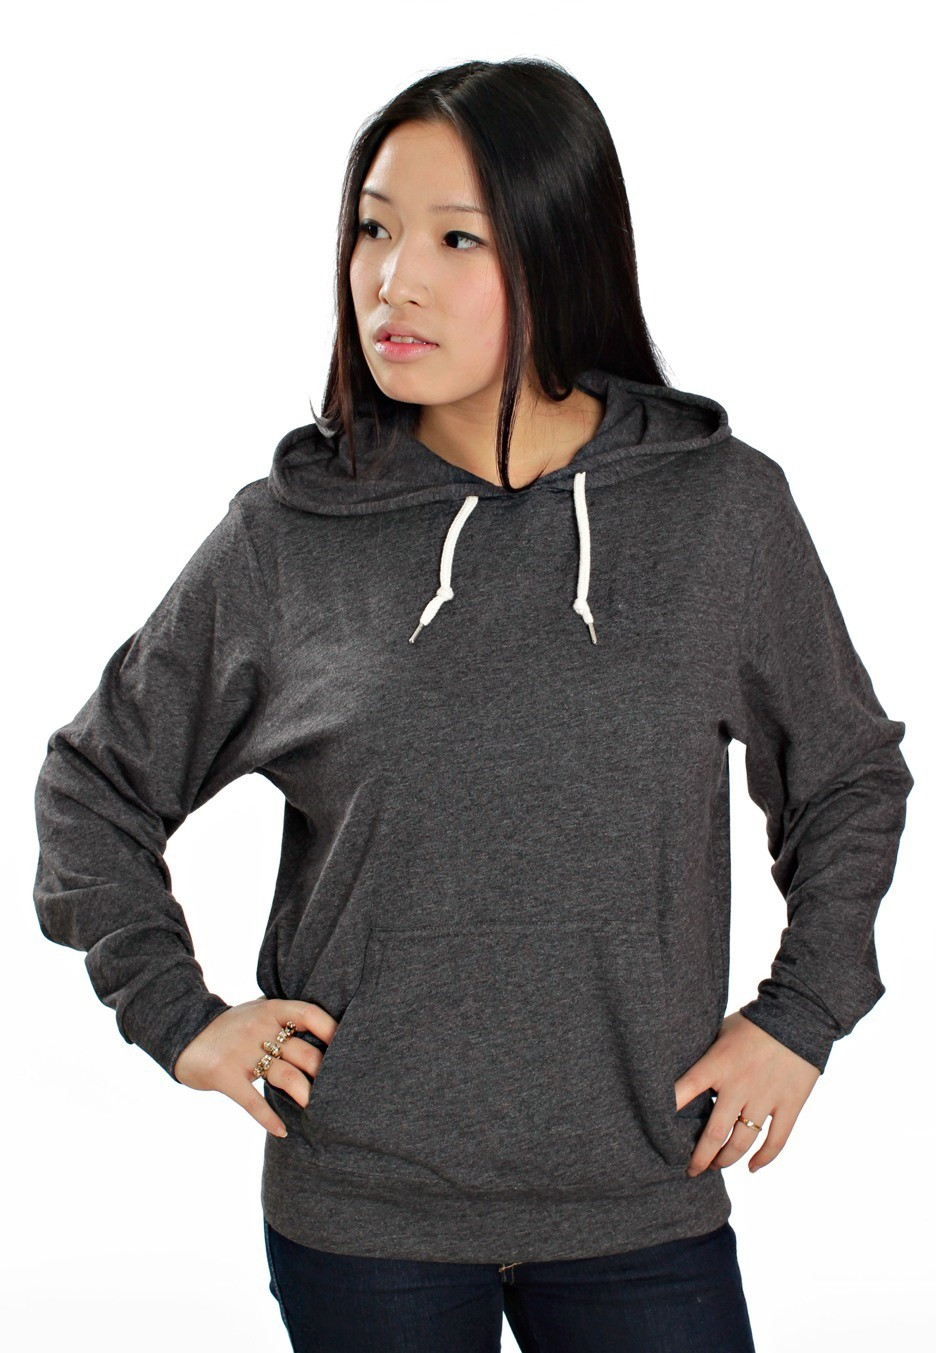 ce344efa3407 Specification  Gray Color Export Quality Fleece Fabric Bangladesh  Manufacture Puma Ladies Winter Hoodie (HJF-09)